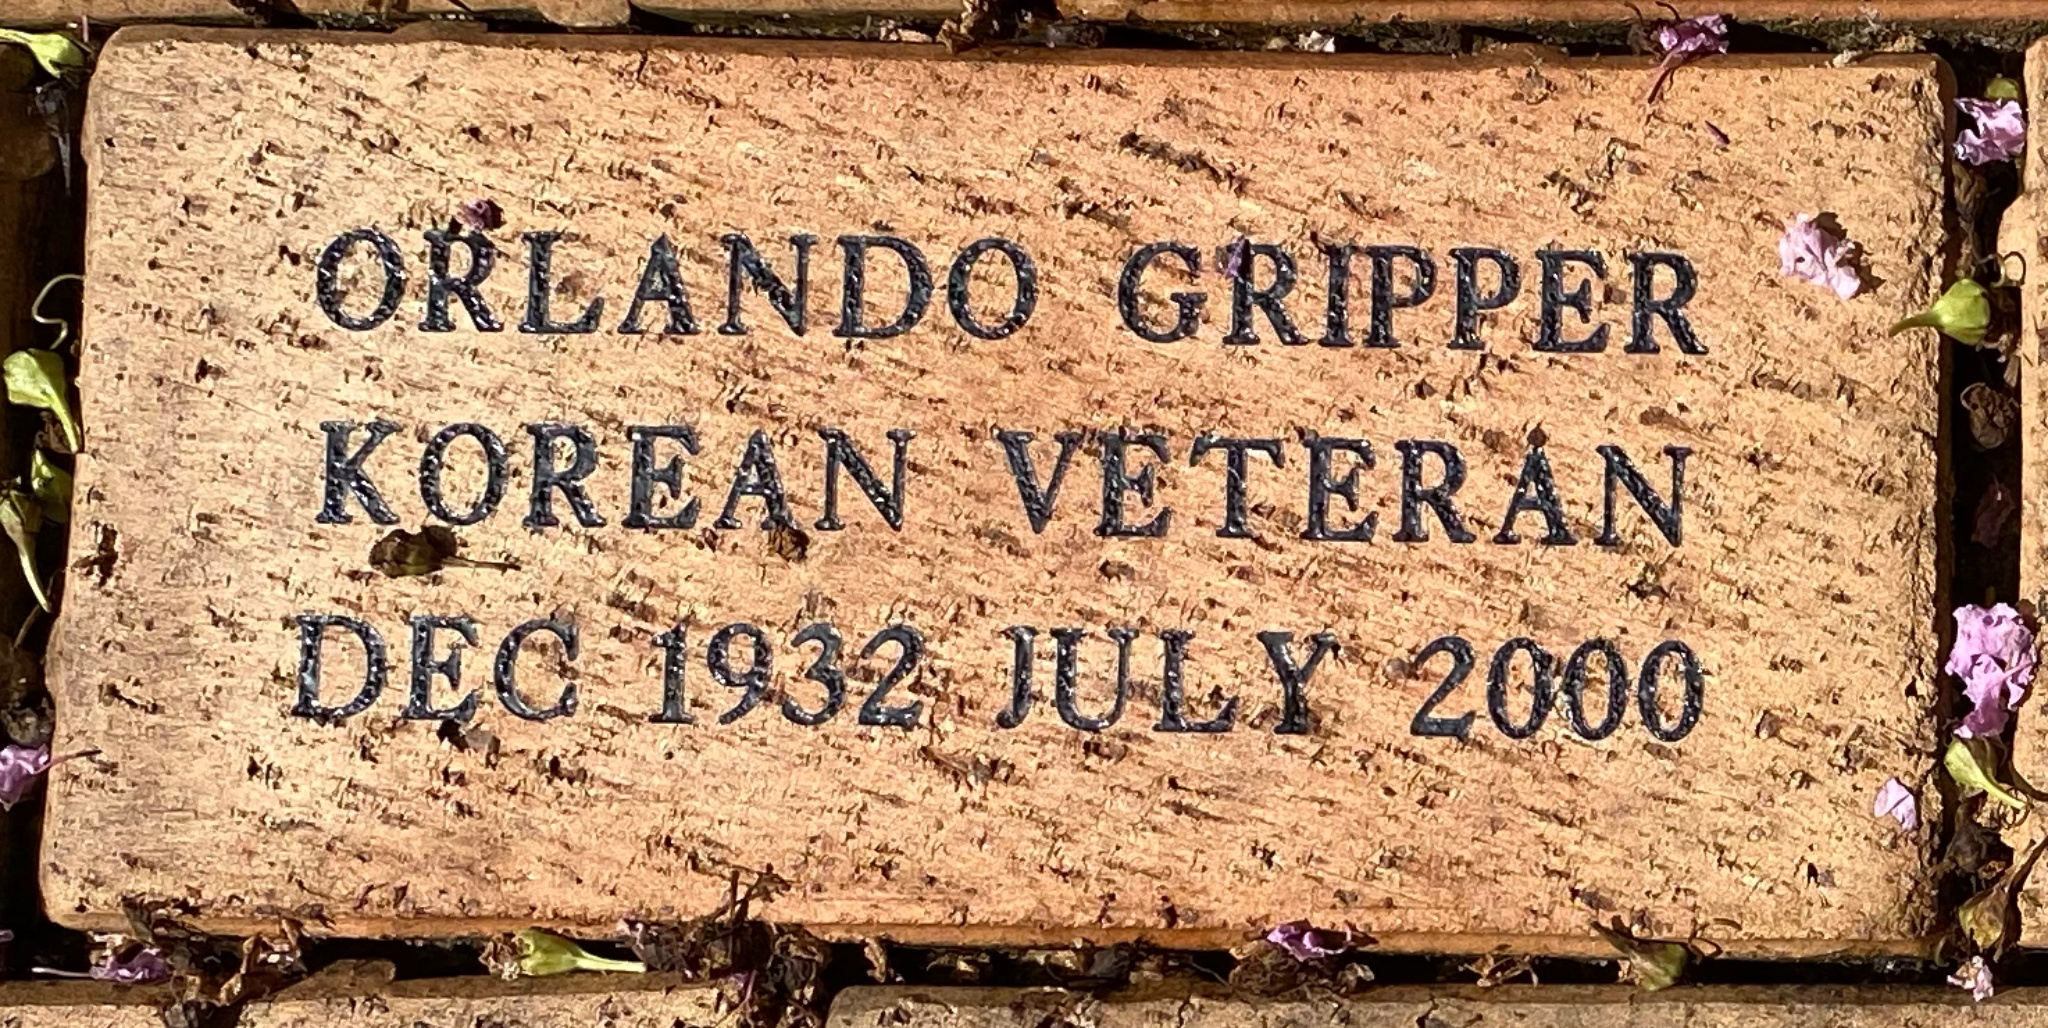 ORLANDO GRIPPER KOREAN VETERAN DEC 1932 JULY 2000